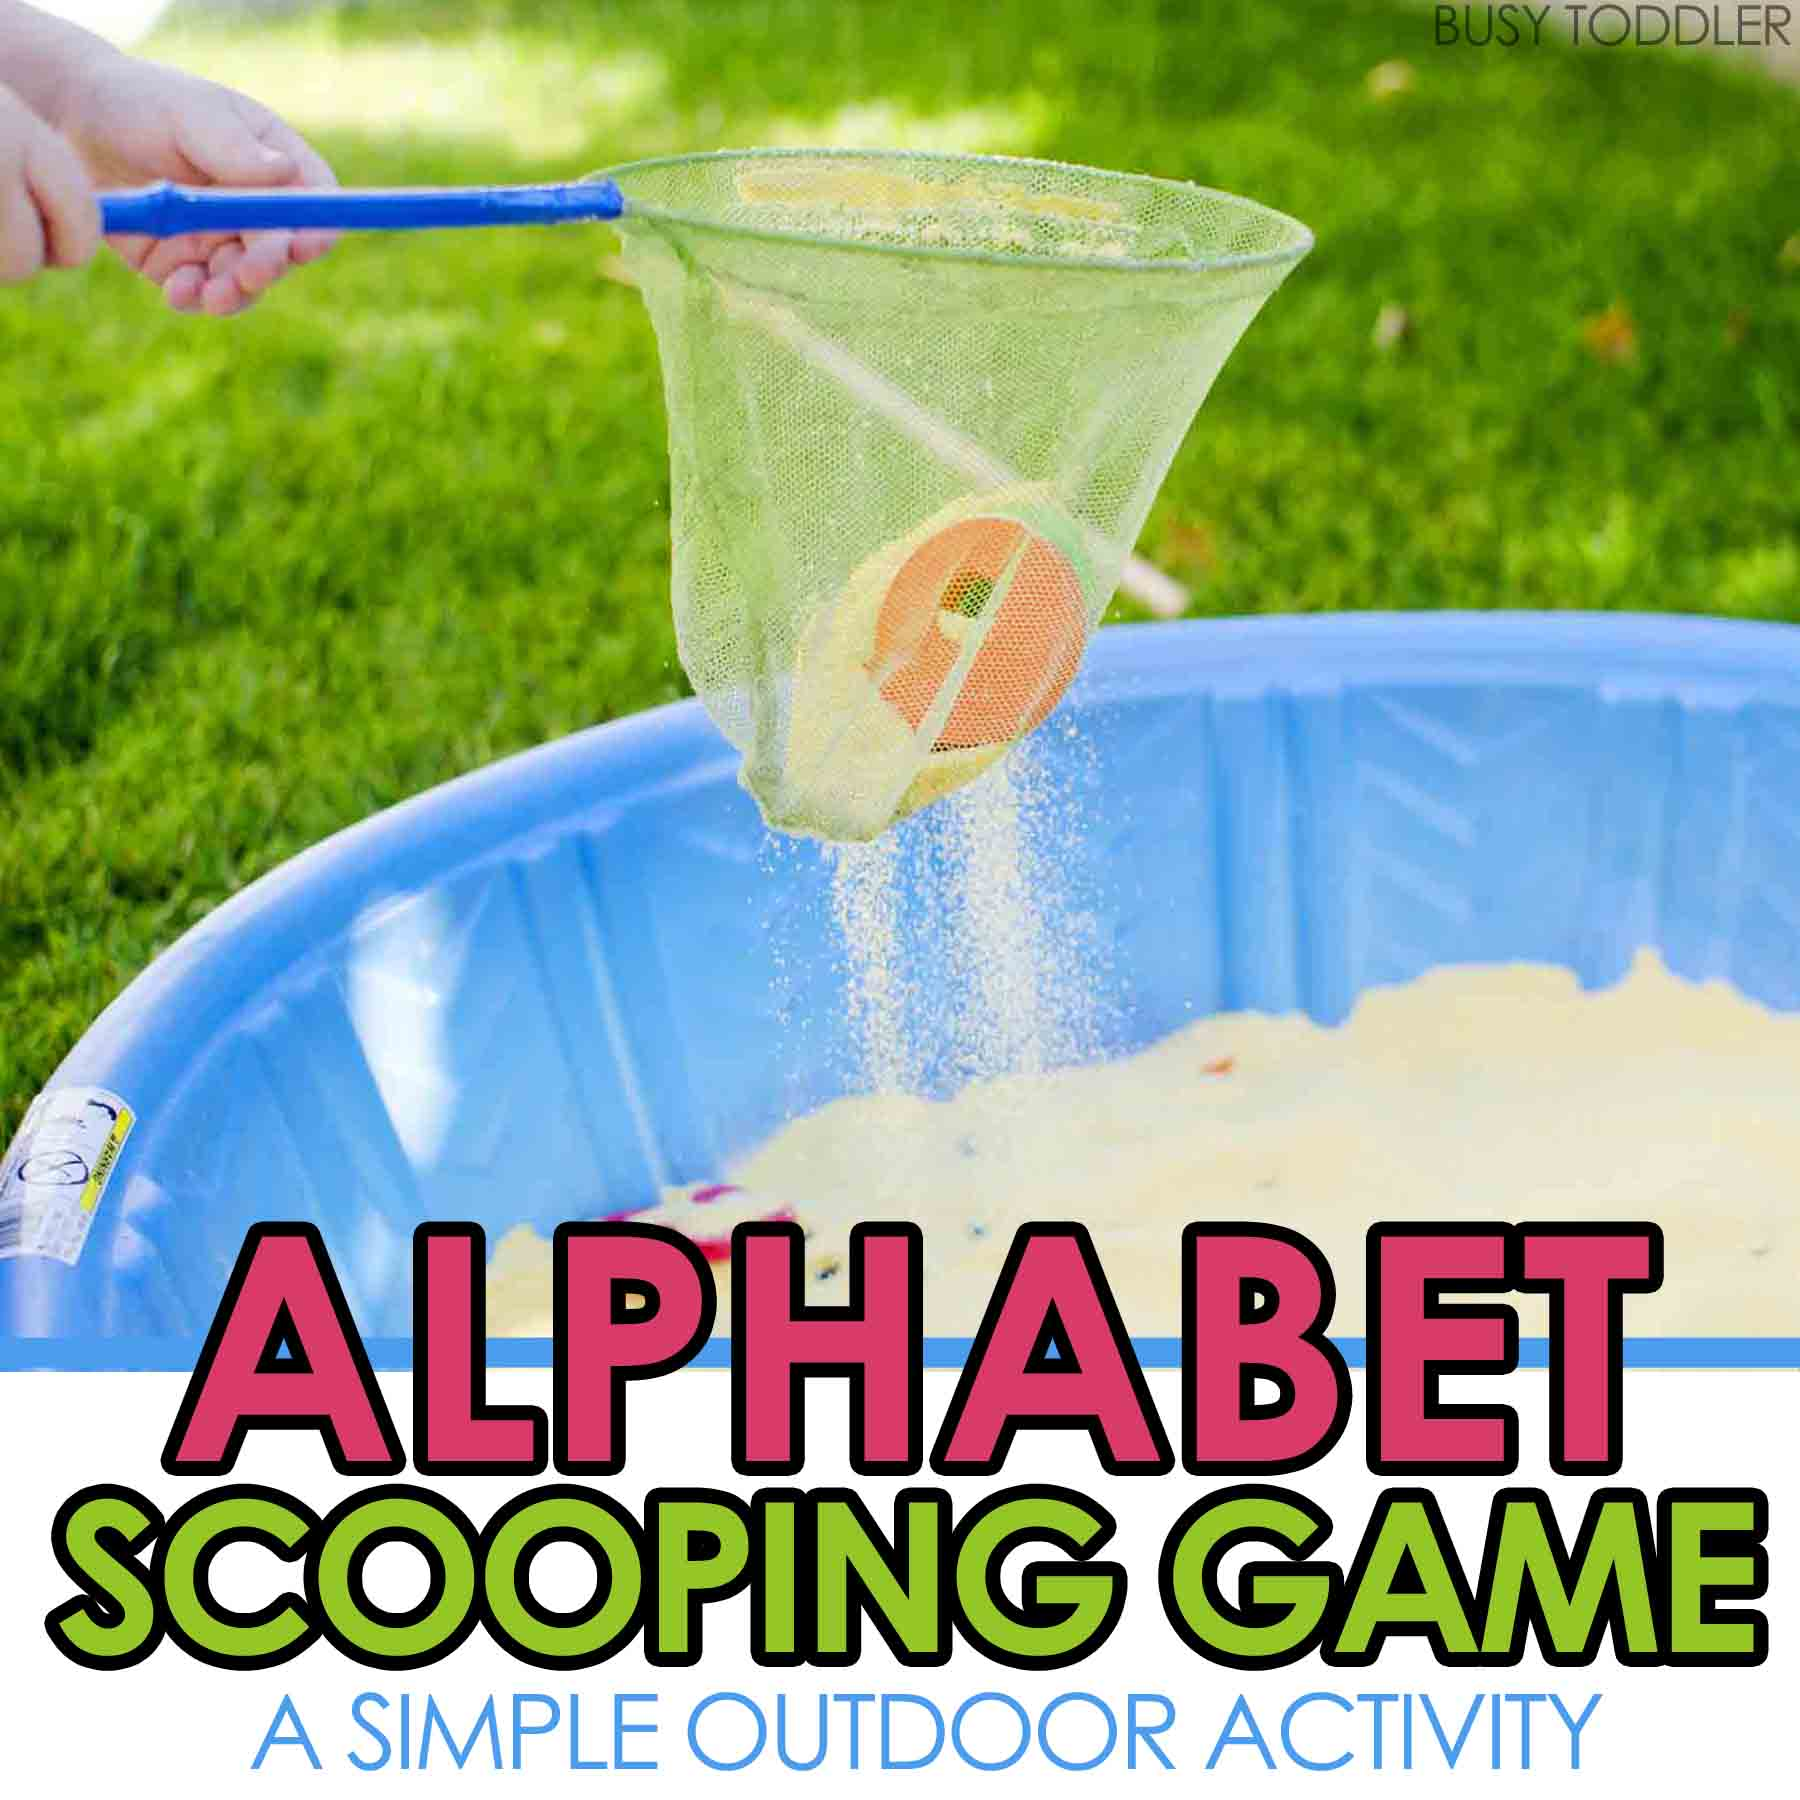 ALPHABET SCOOPING GAME: A fun sensory and literacy activity for toddlers and preschoolers. An easy outdoor activity. Set up this ABC game for your toddler!